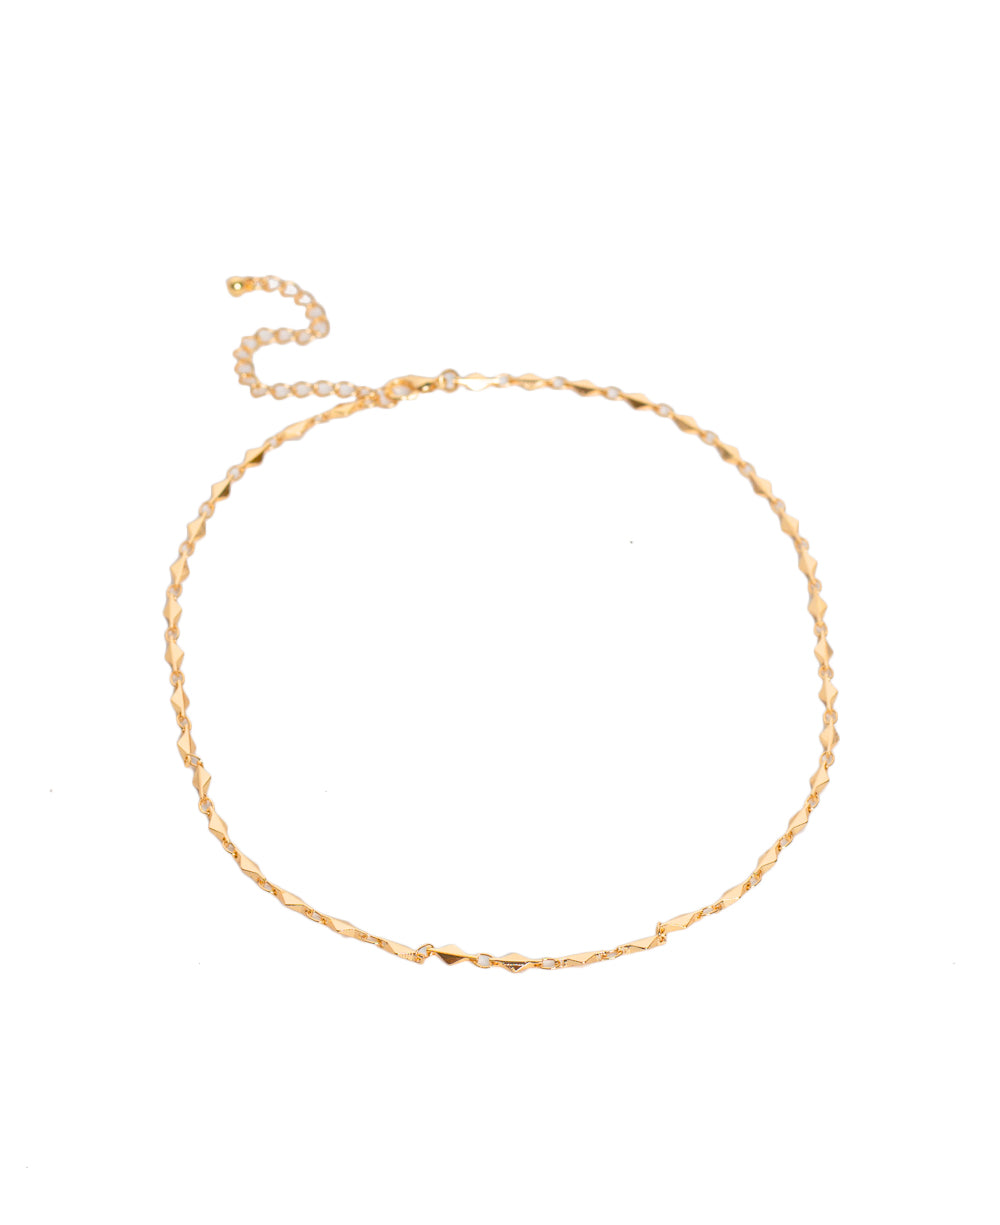 Mabry Interlocked Choker Chain